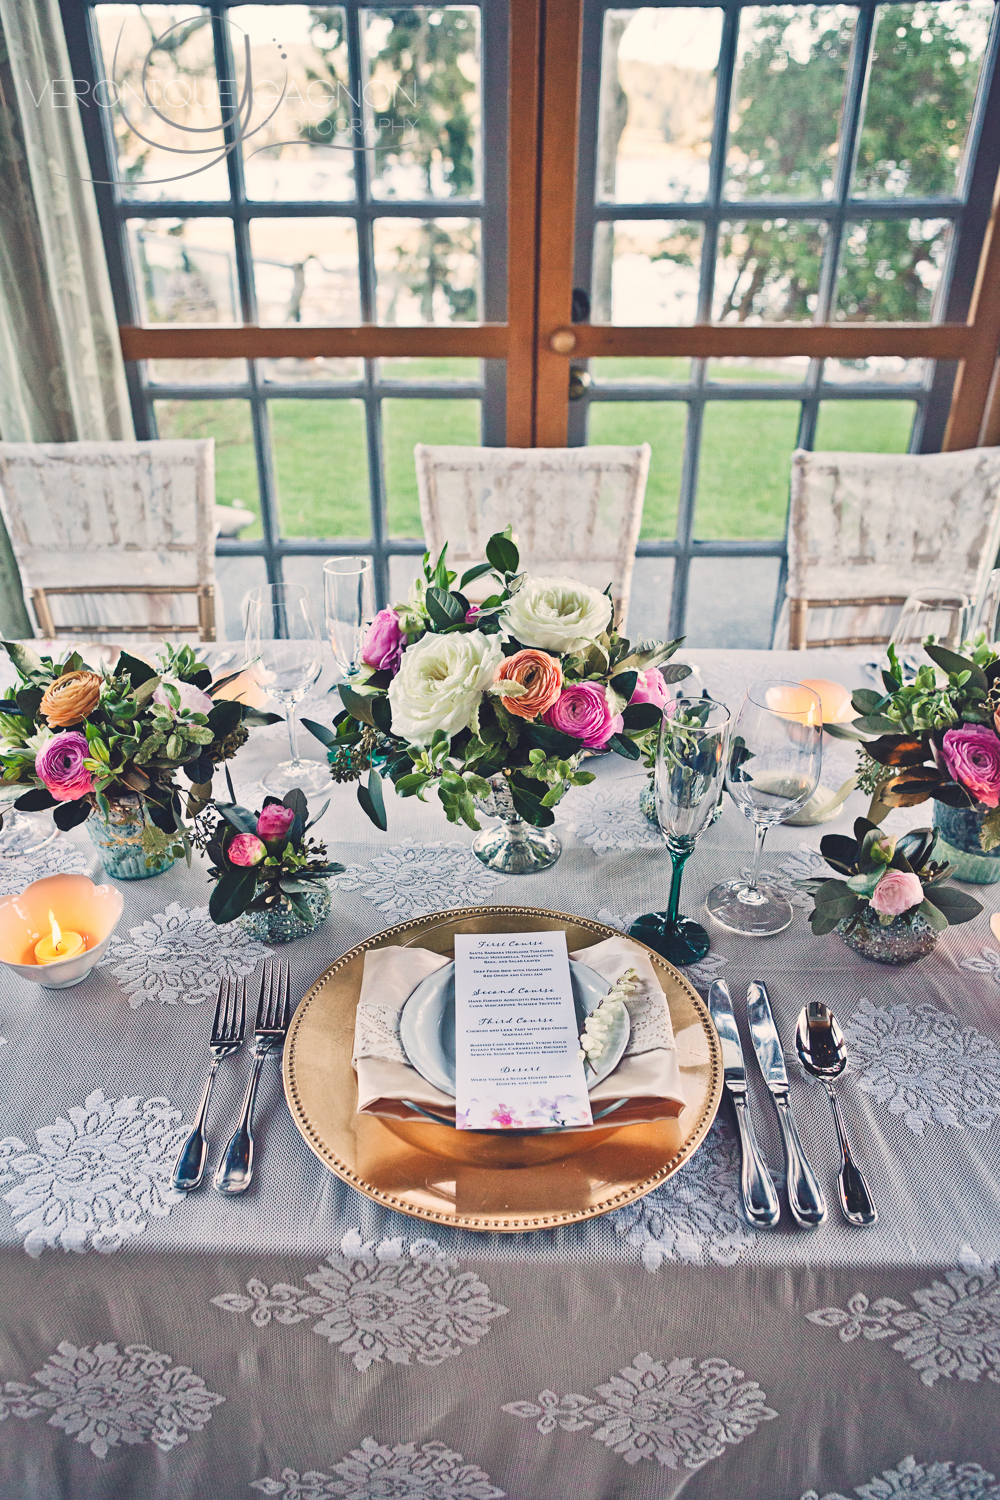 Lace, pastels and roses for a romantic vintage wedding at the Sooke Harbour House